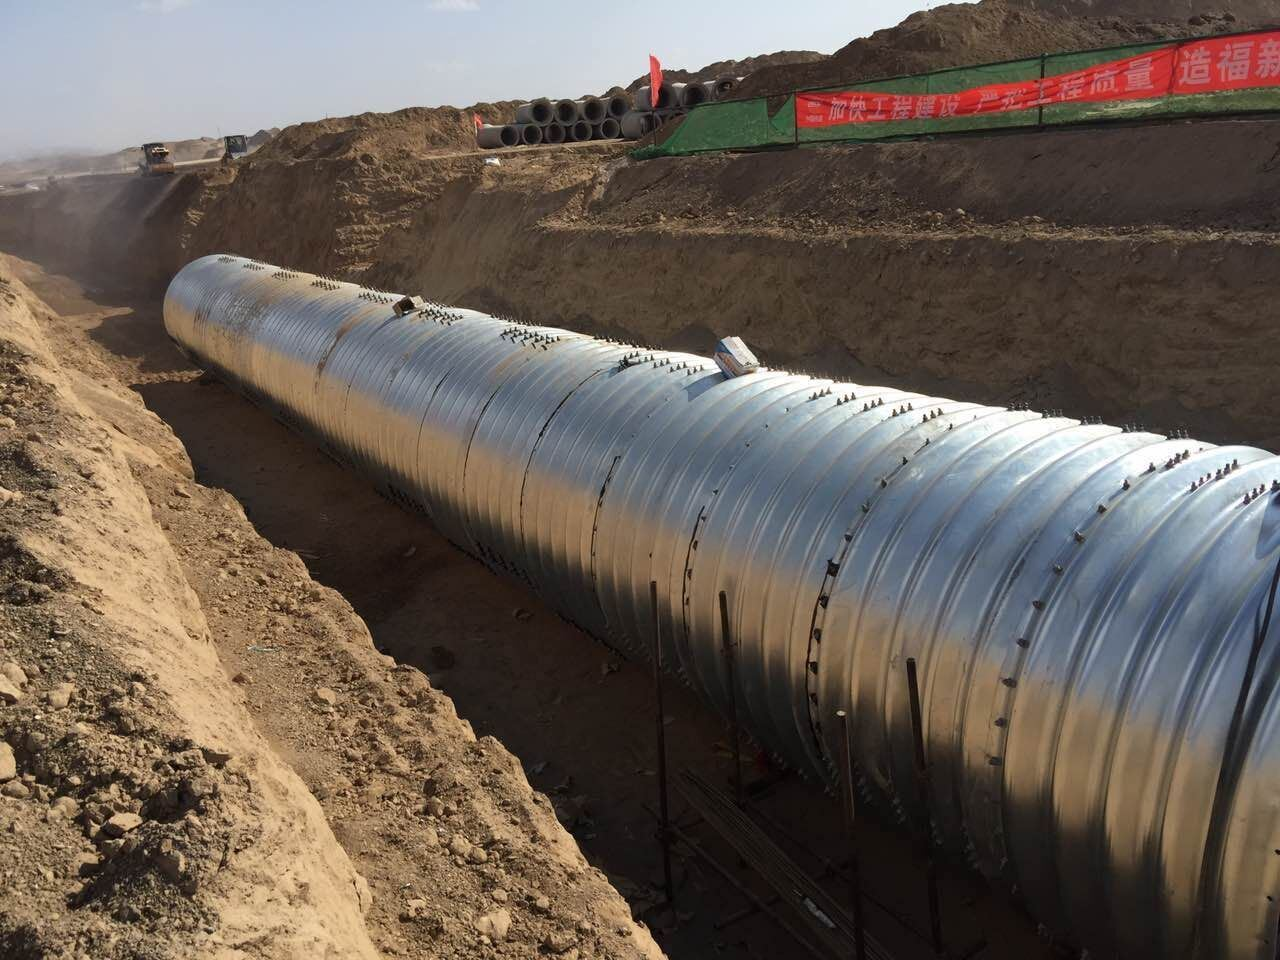 China Corrugated Steel Pipe Liners Road Drainage Pipe System Culvert Structural Corrugated Steel Plates - China Corrugated Steel Culvert Pipe ... & China Corrugated Steel Pipe Liners Road Drainage Pipe System ...